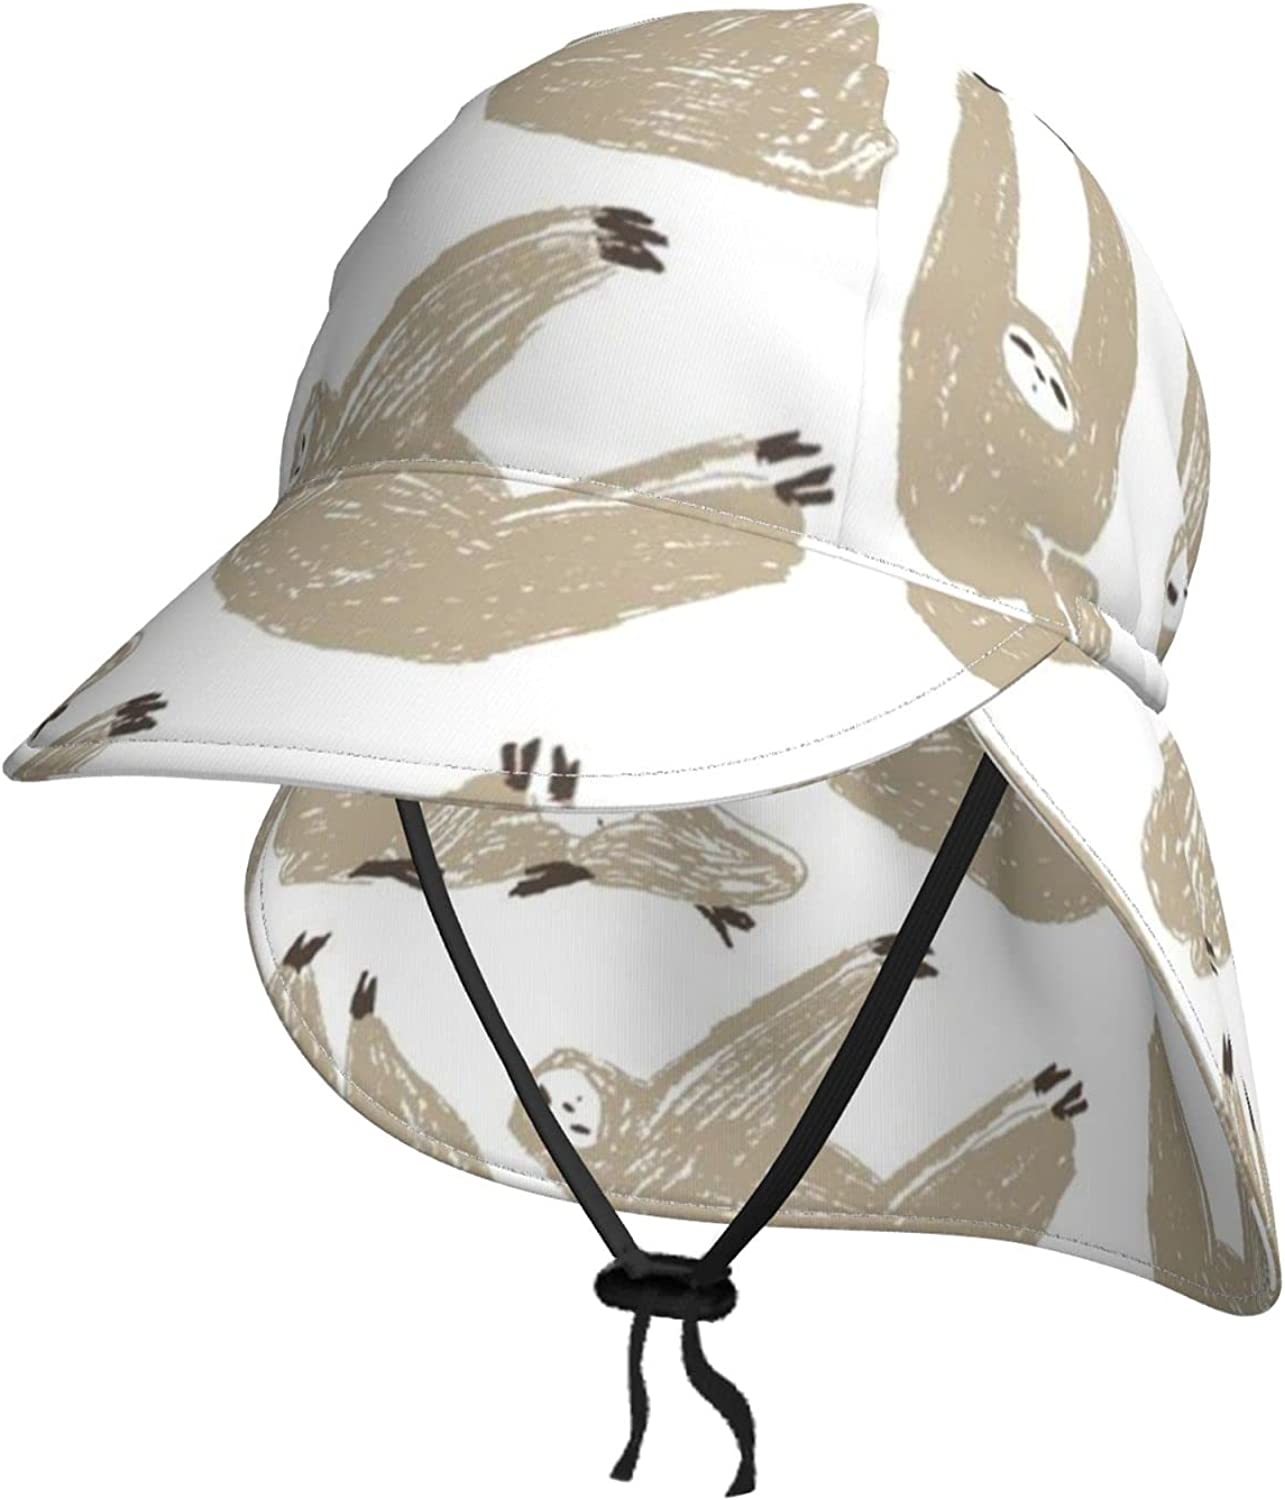 Hand-Draw Rare Sloth Kids Sun Hat Breat Flap Limited time trial price Summer Neck with